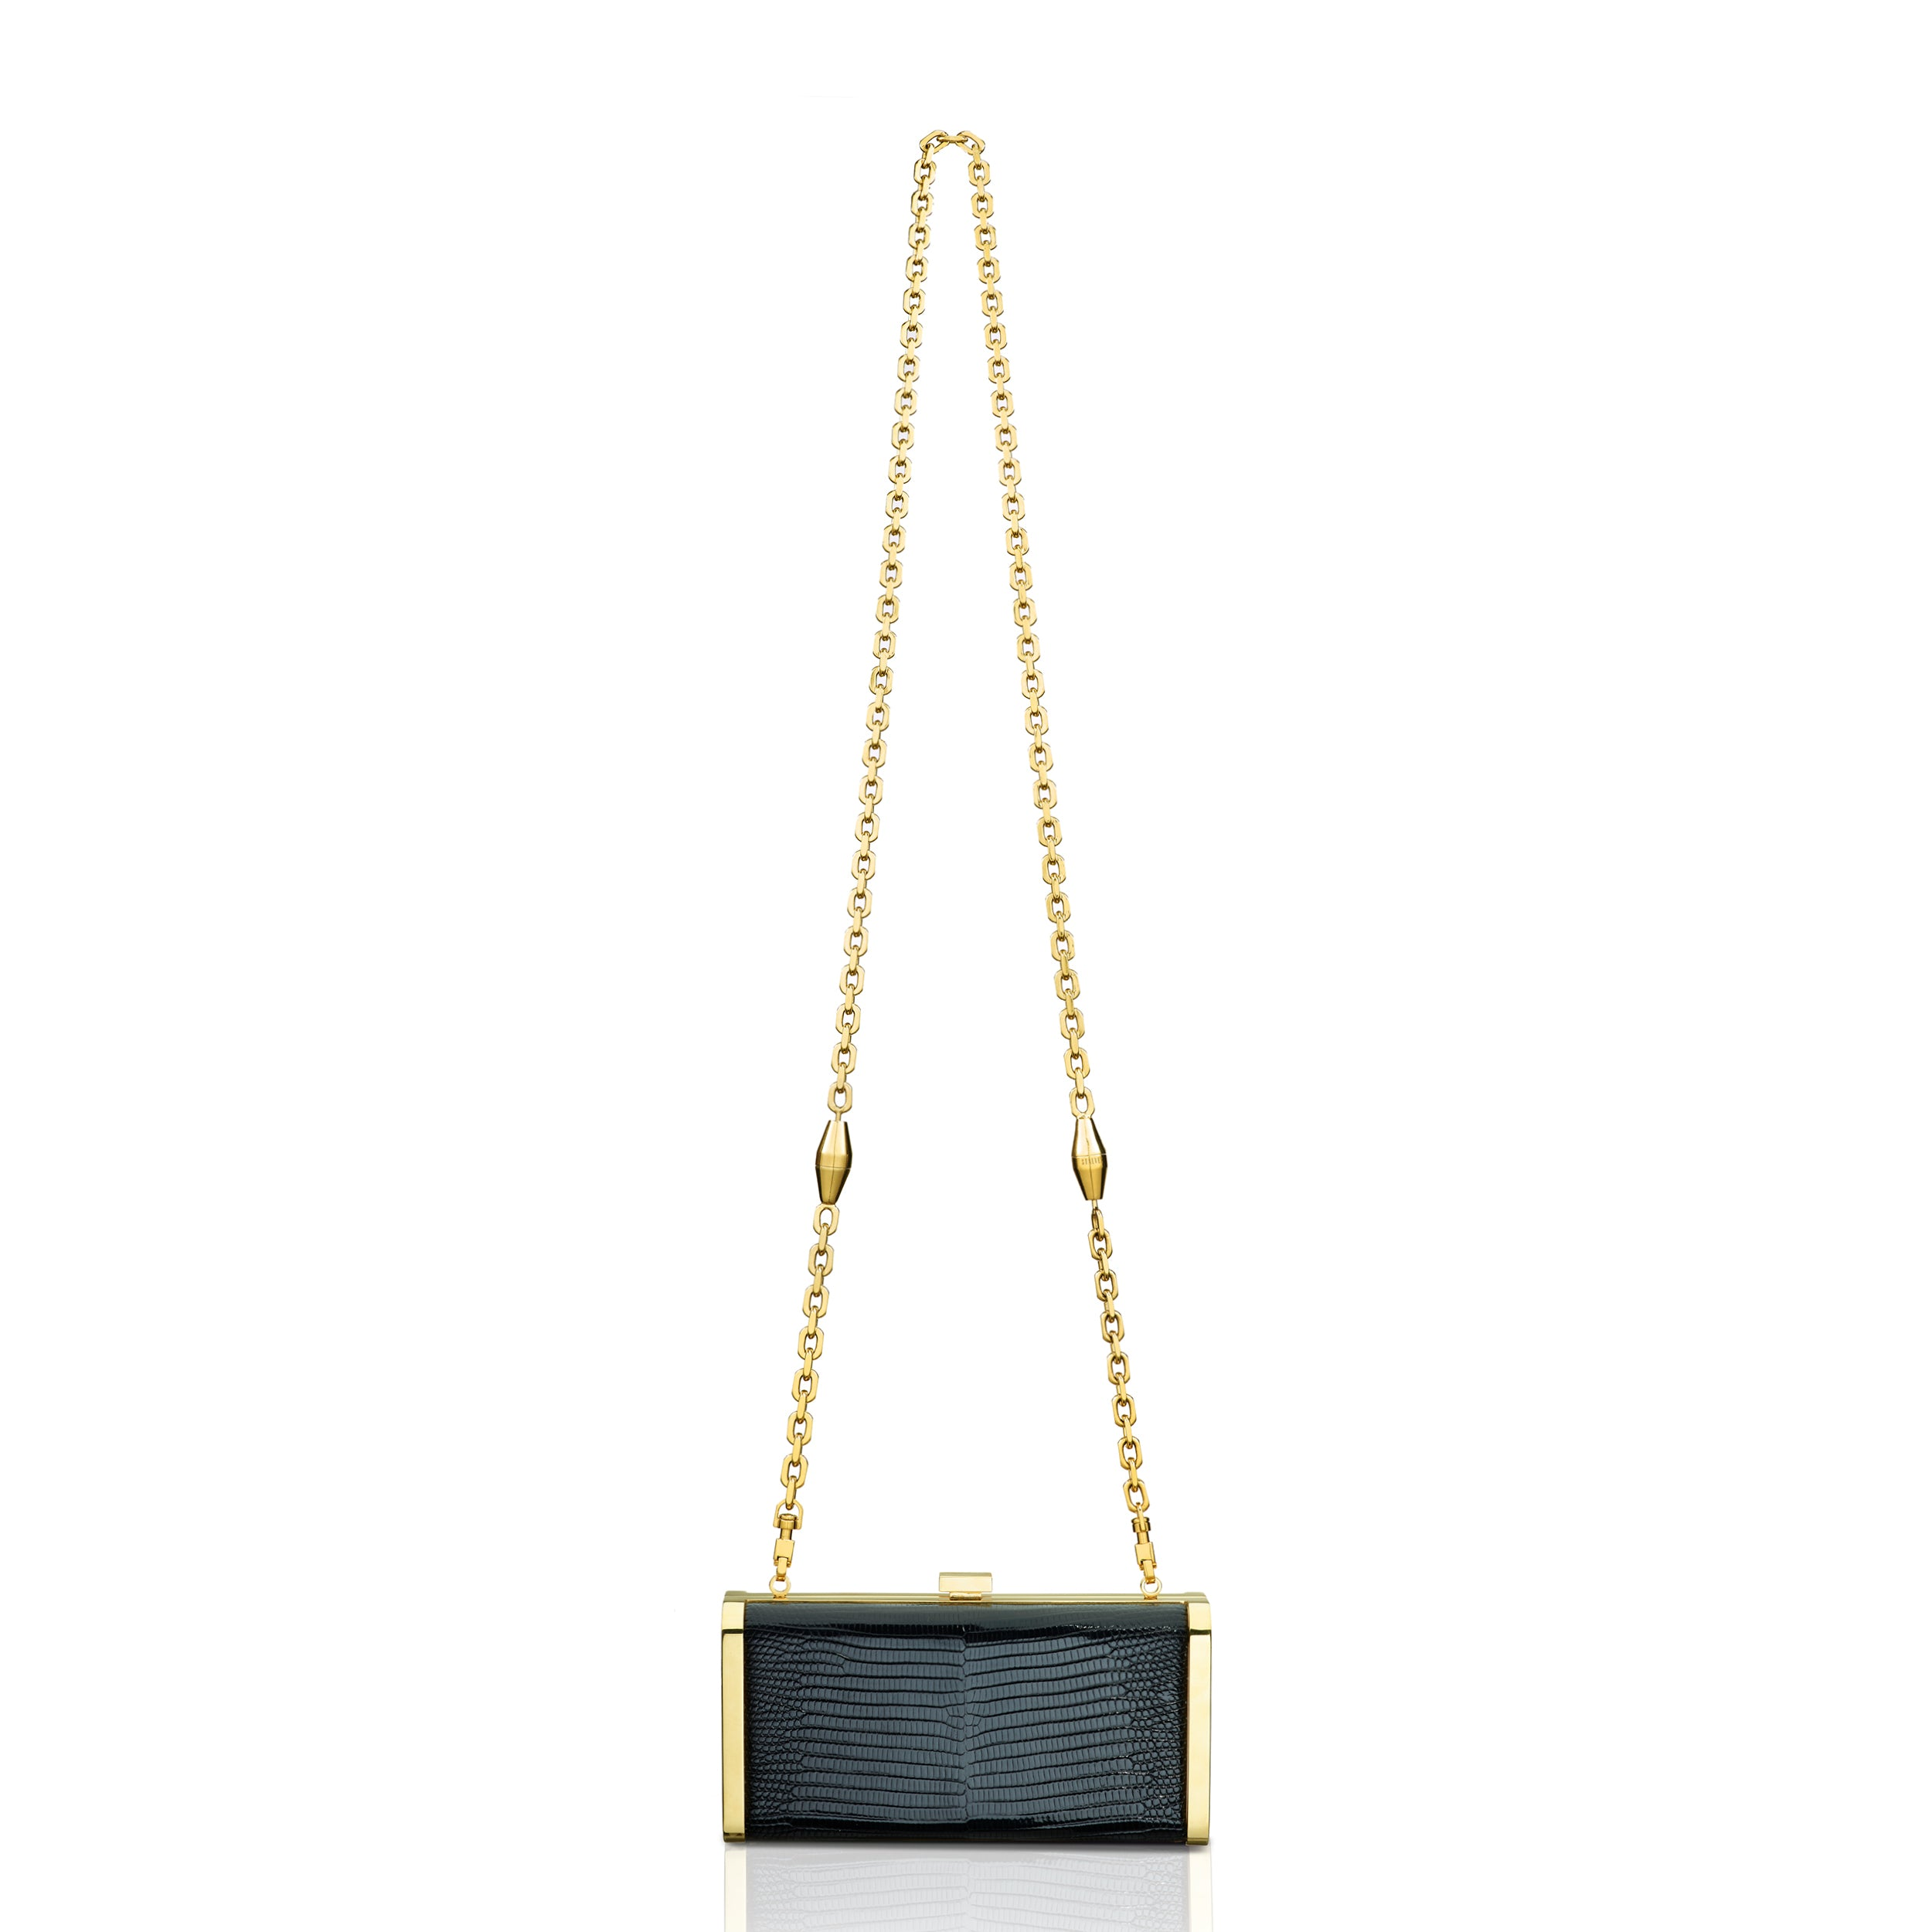 Square Clutch - Black Lizard